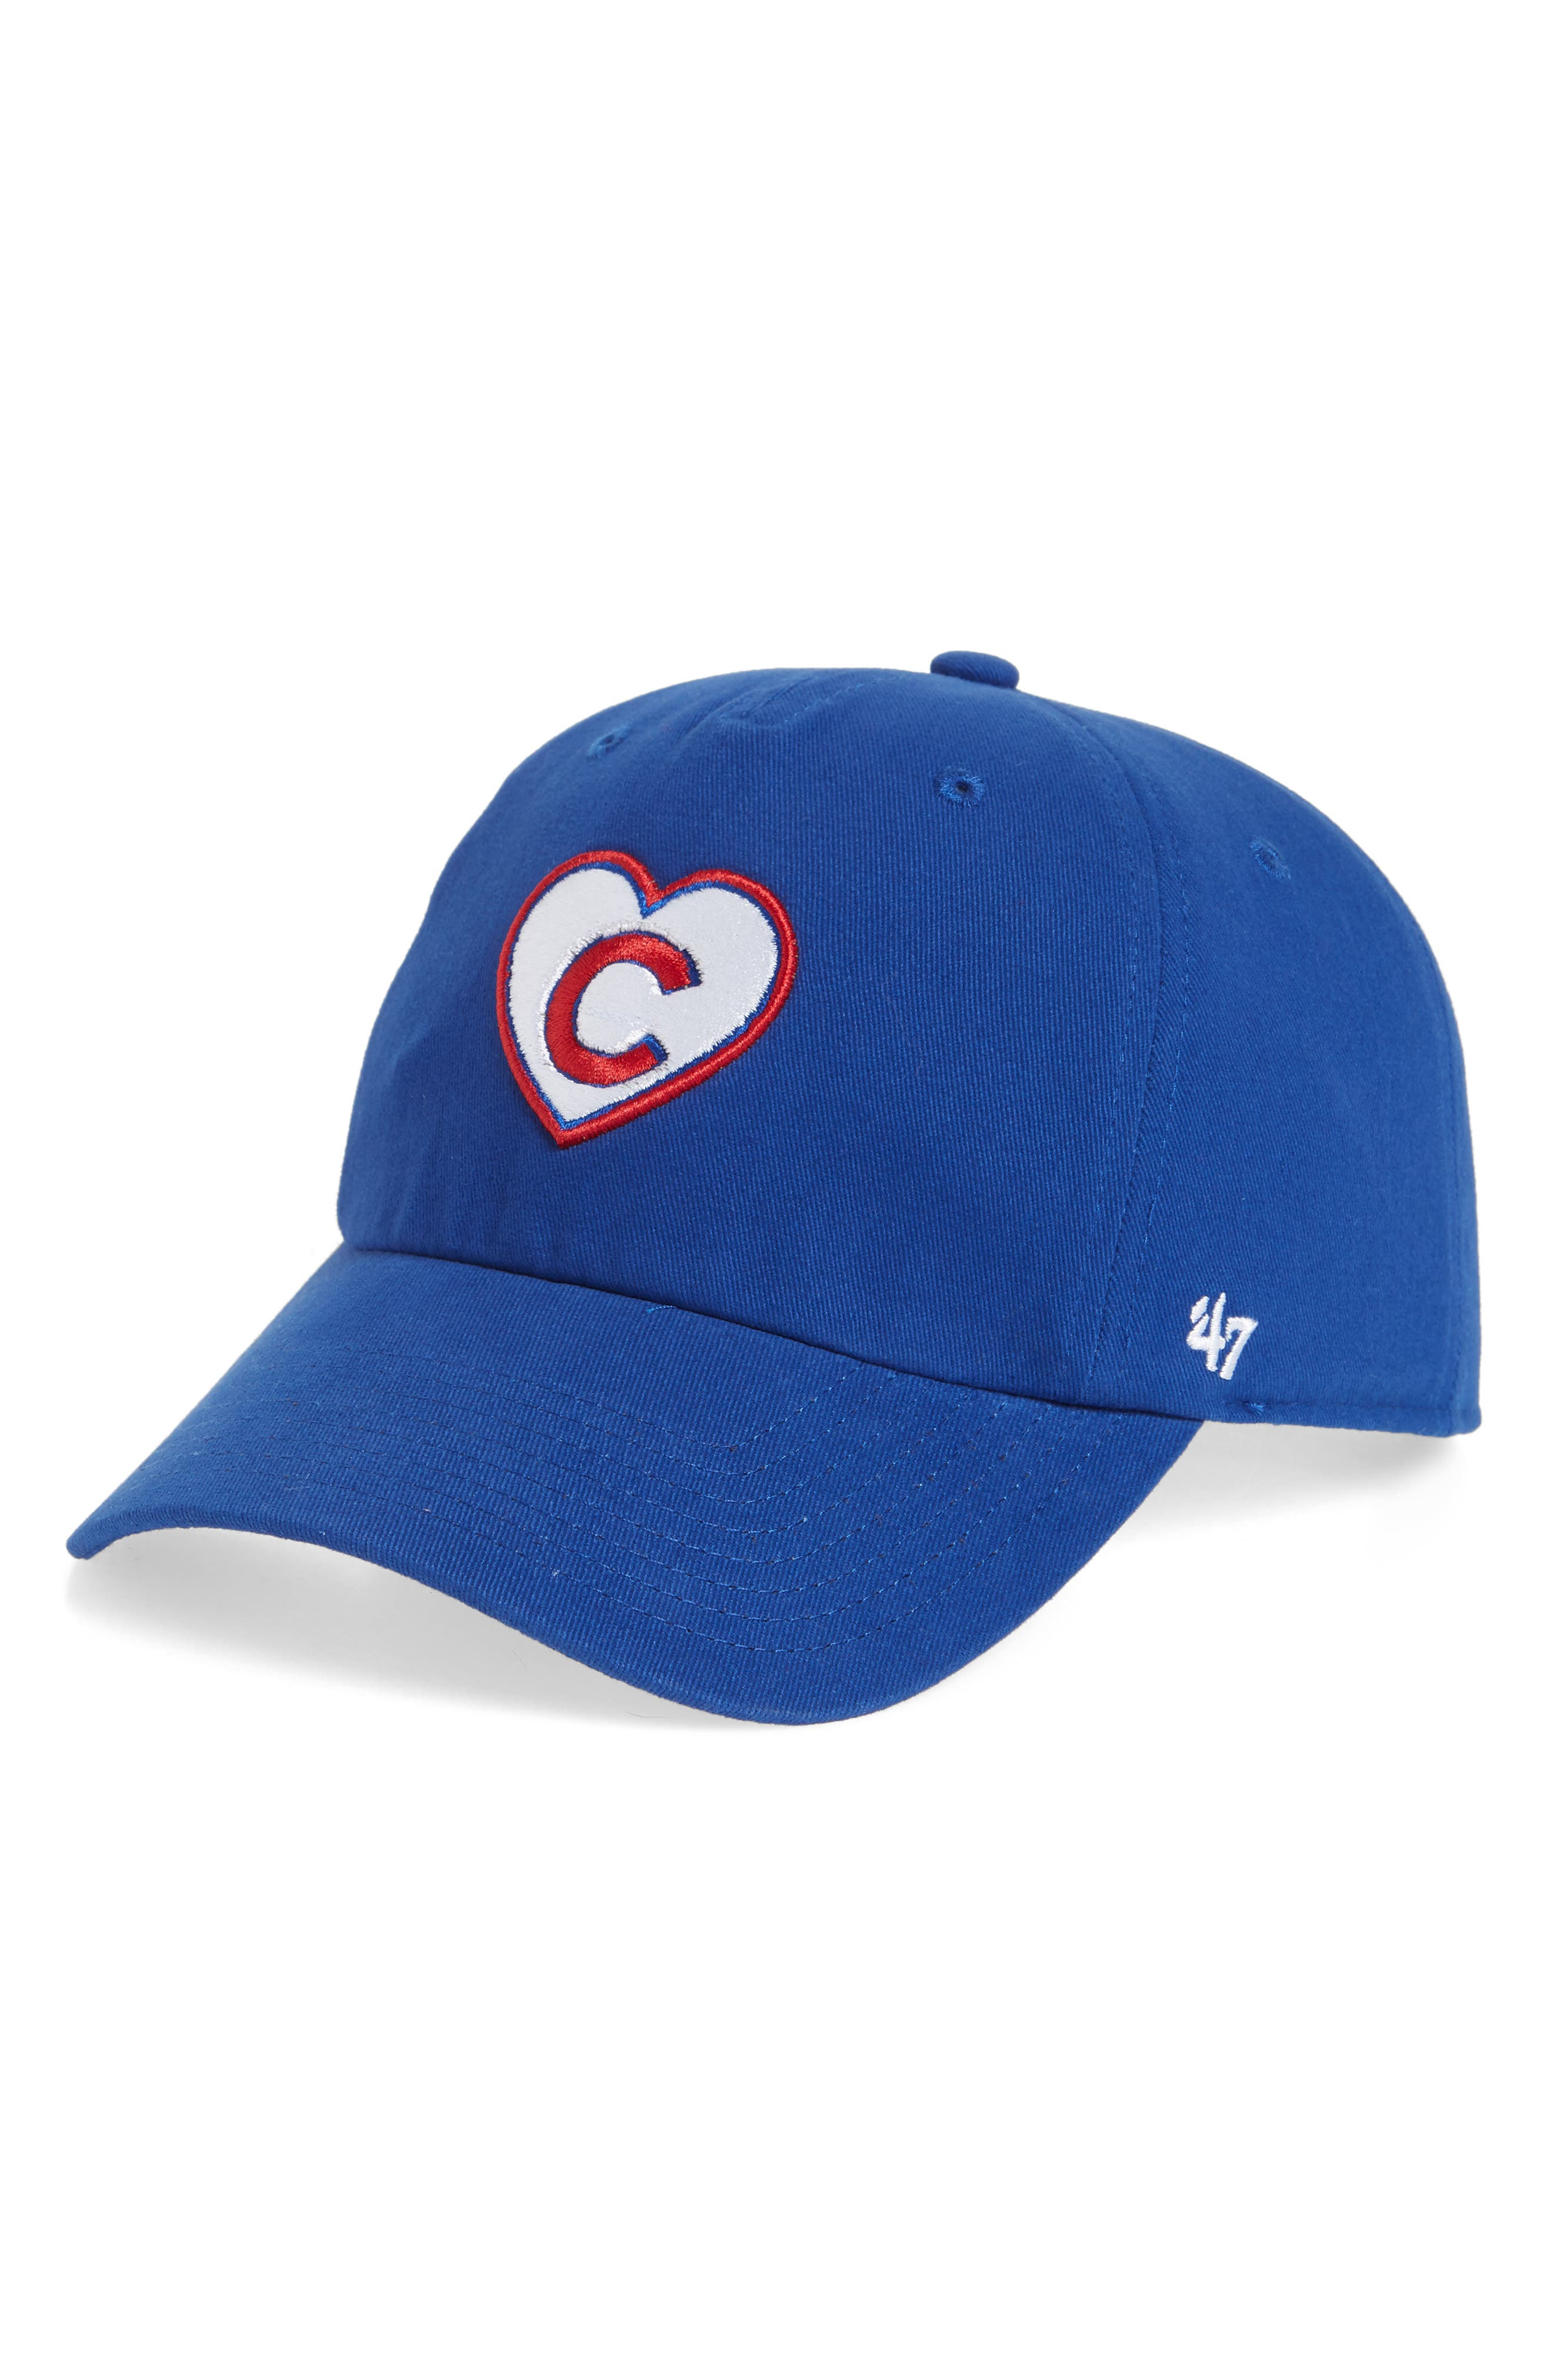 Courtney Clean-Up Chicago Cubs Baseball Cap,                             Main thumbnail 1, color,                             Blue